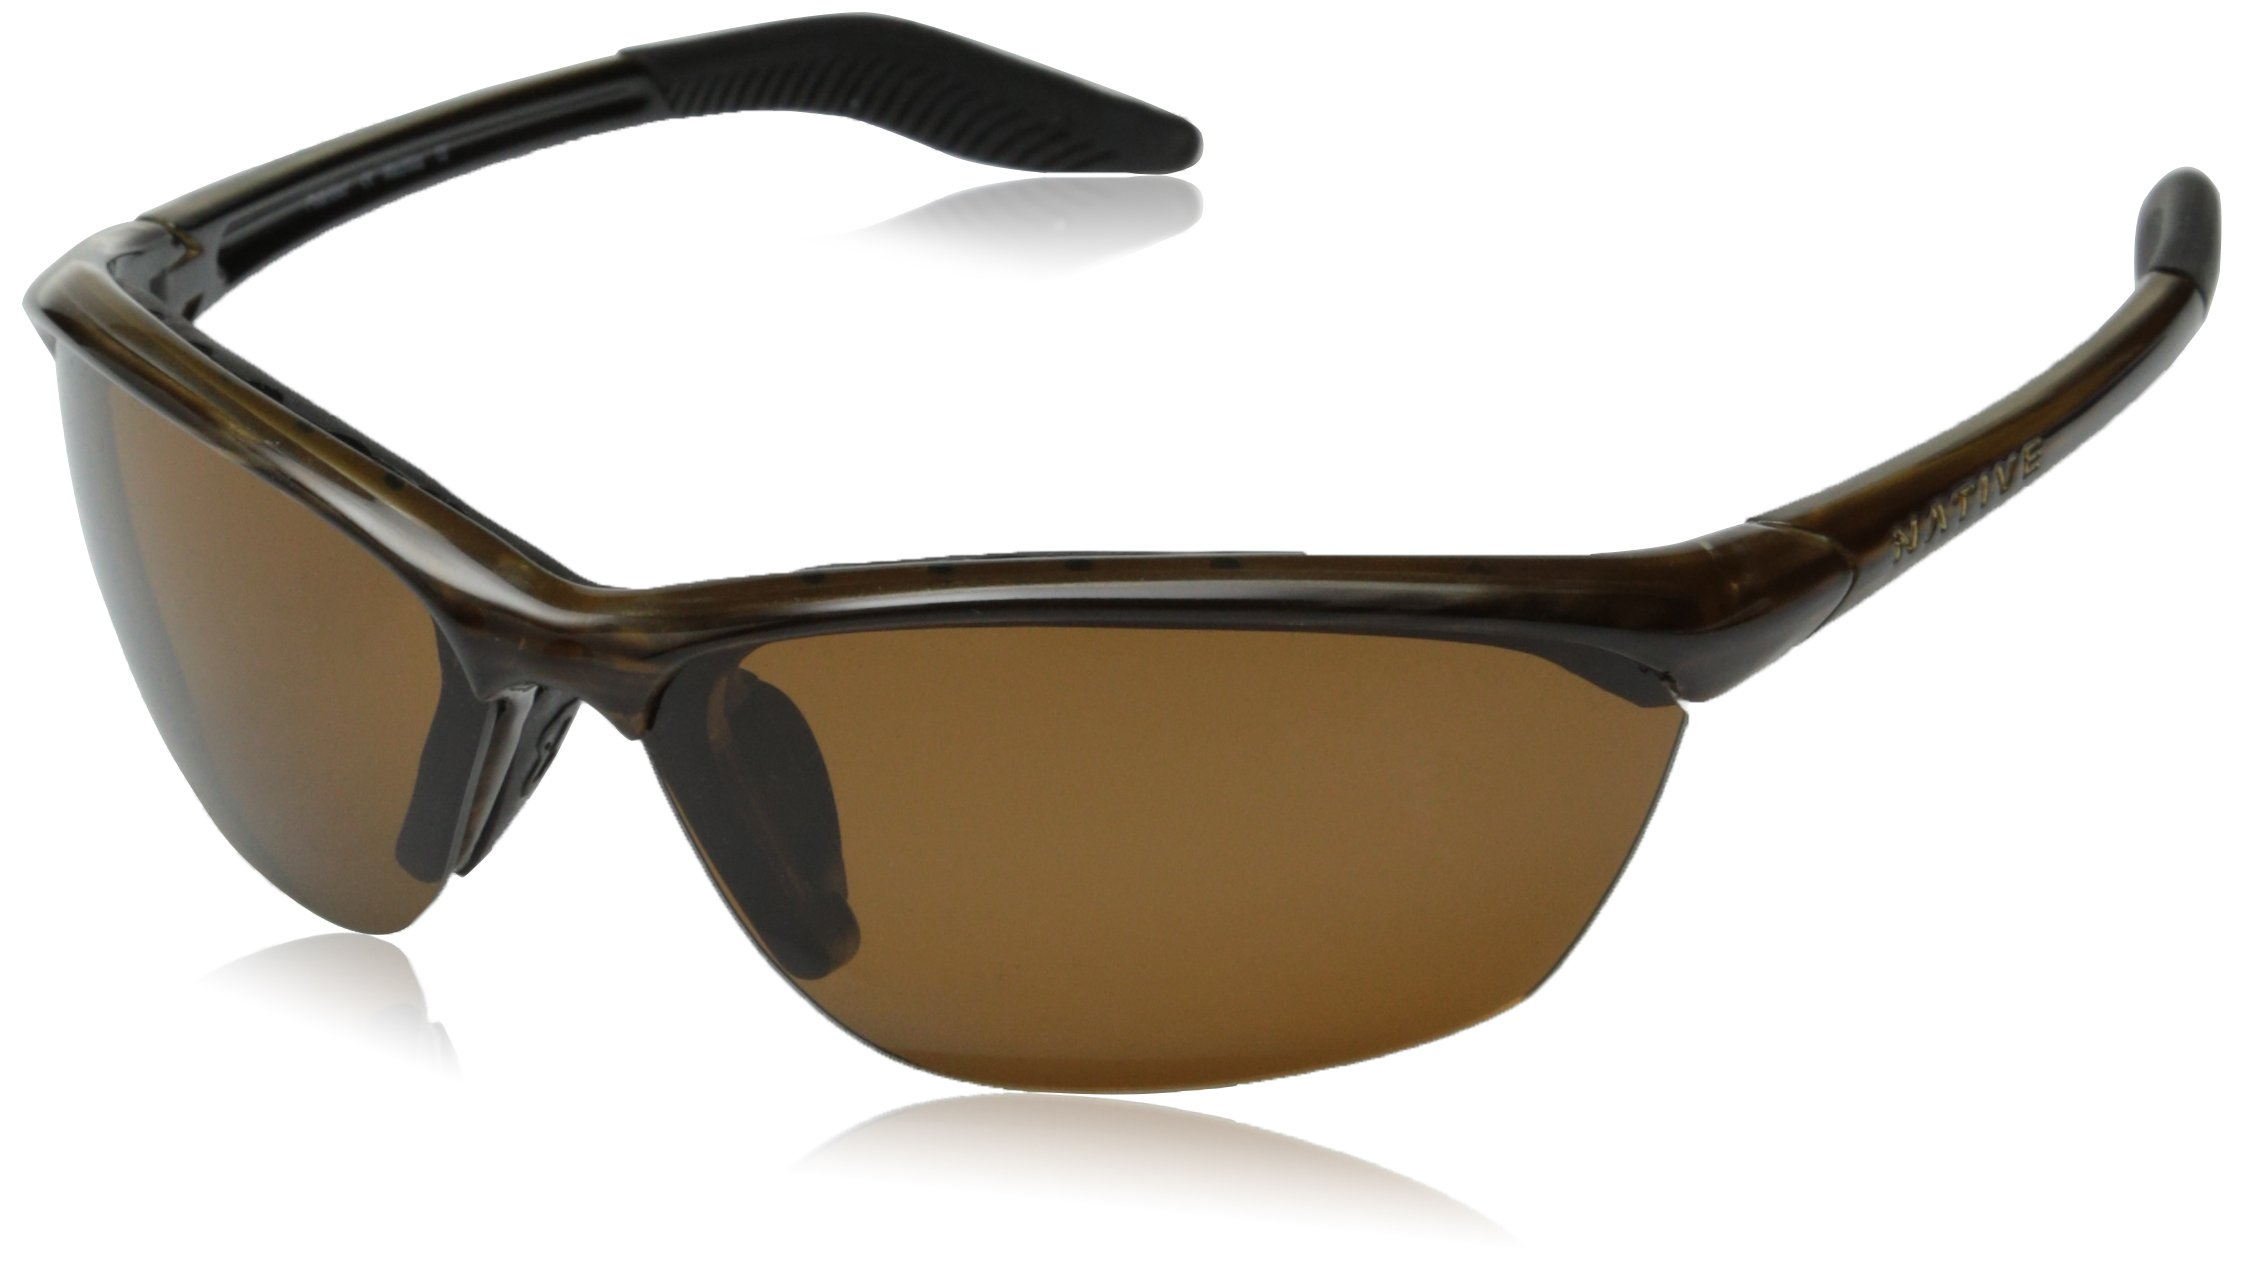 Native Eyewear Hardtop Sunglasses, Wood with Brown Lens